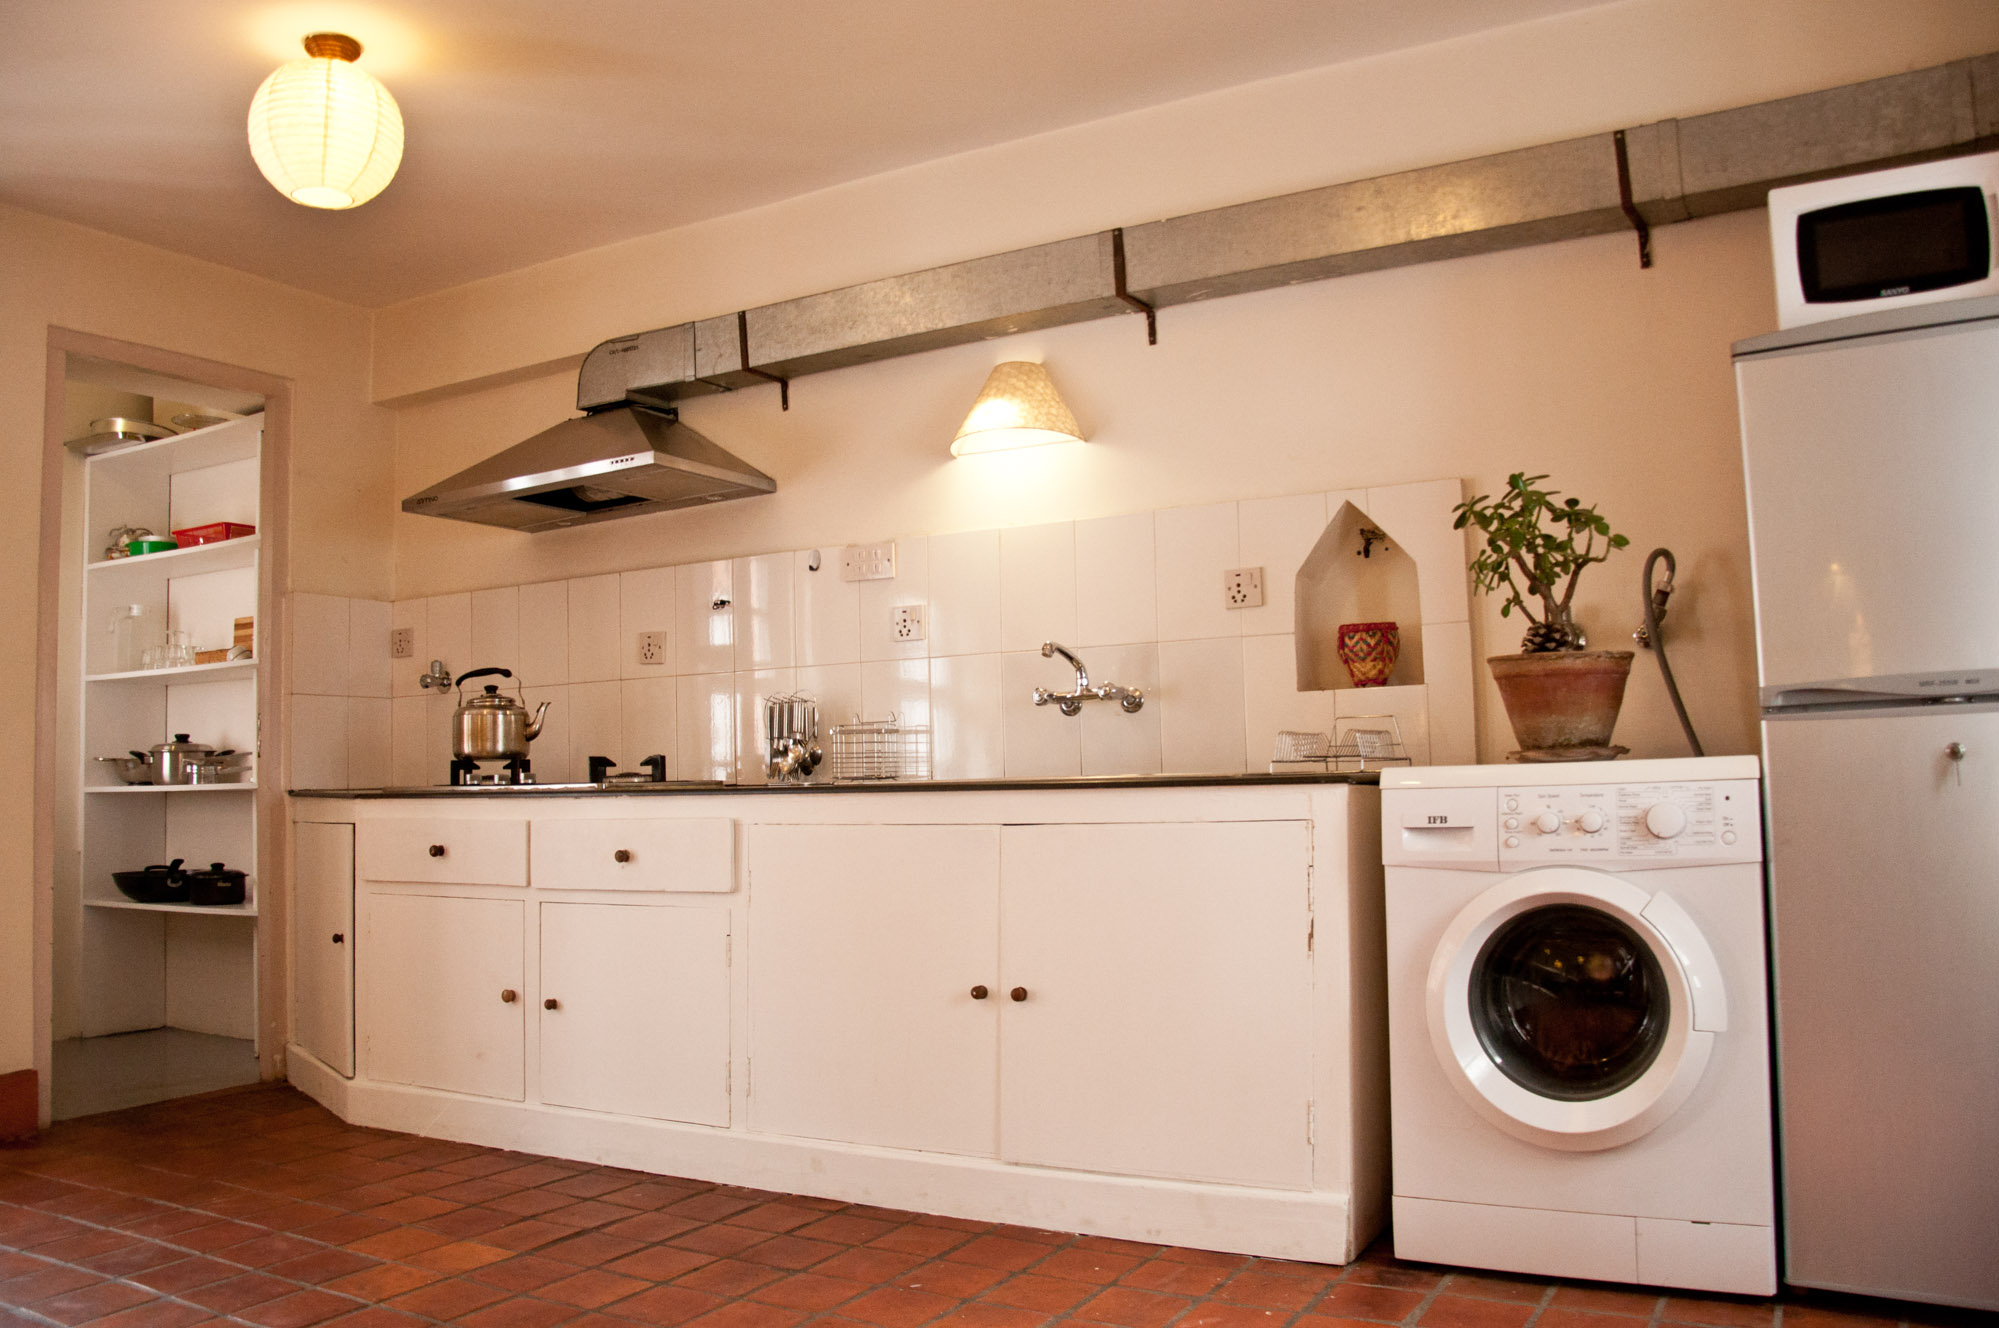 Fully equiped kitchen, microwave, washine machine and storage space.